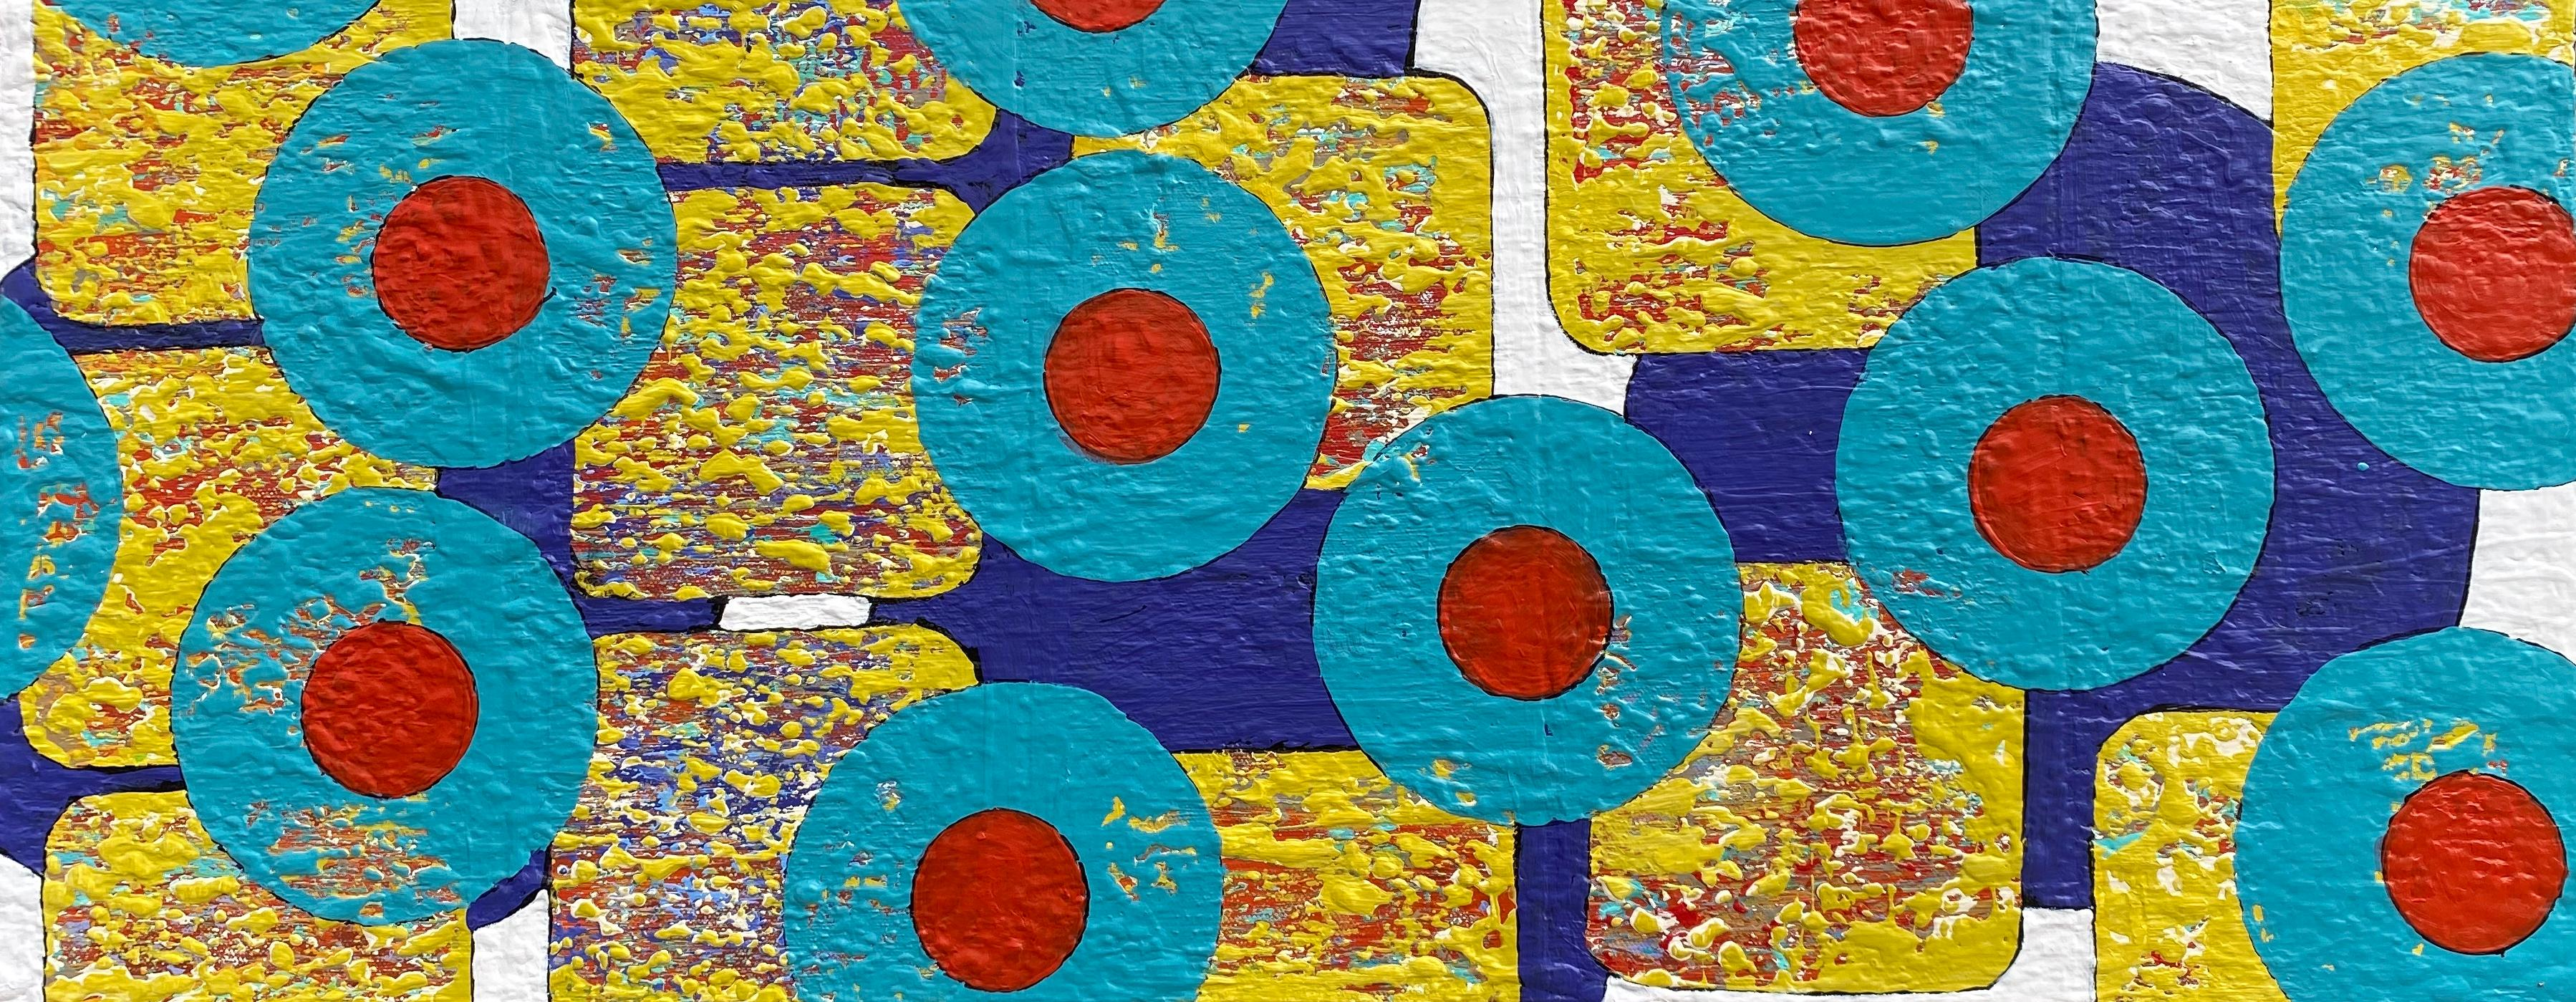 Yellow Submarine, Abstract Painting